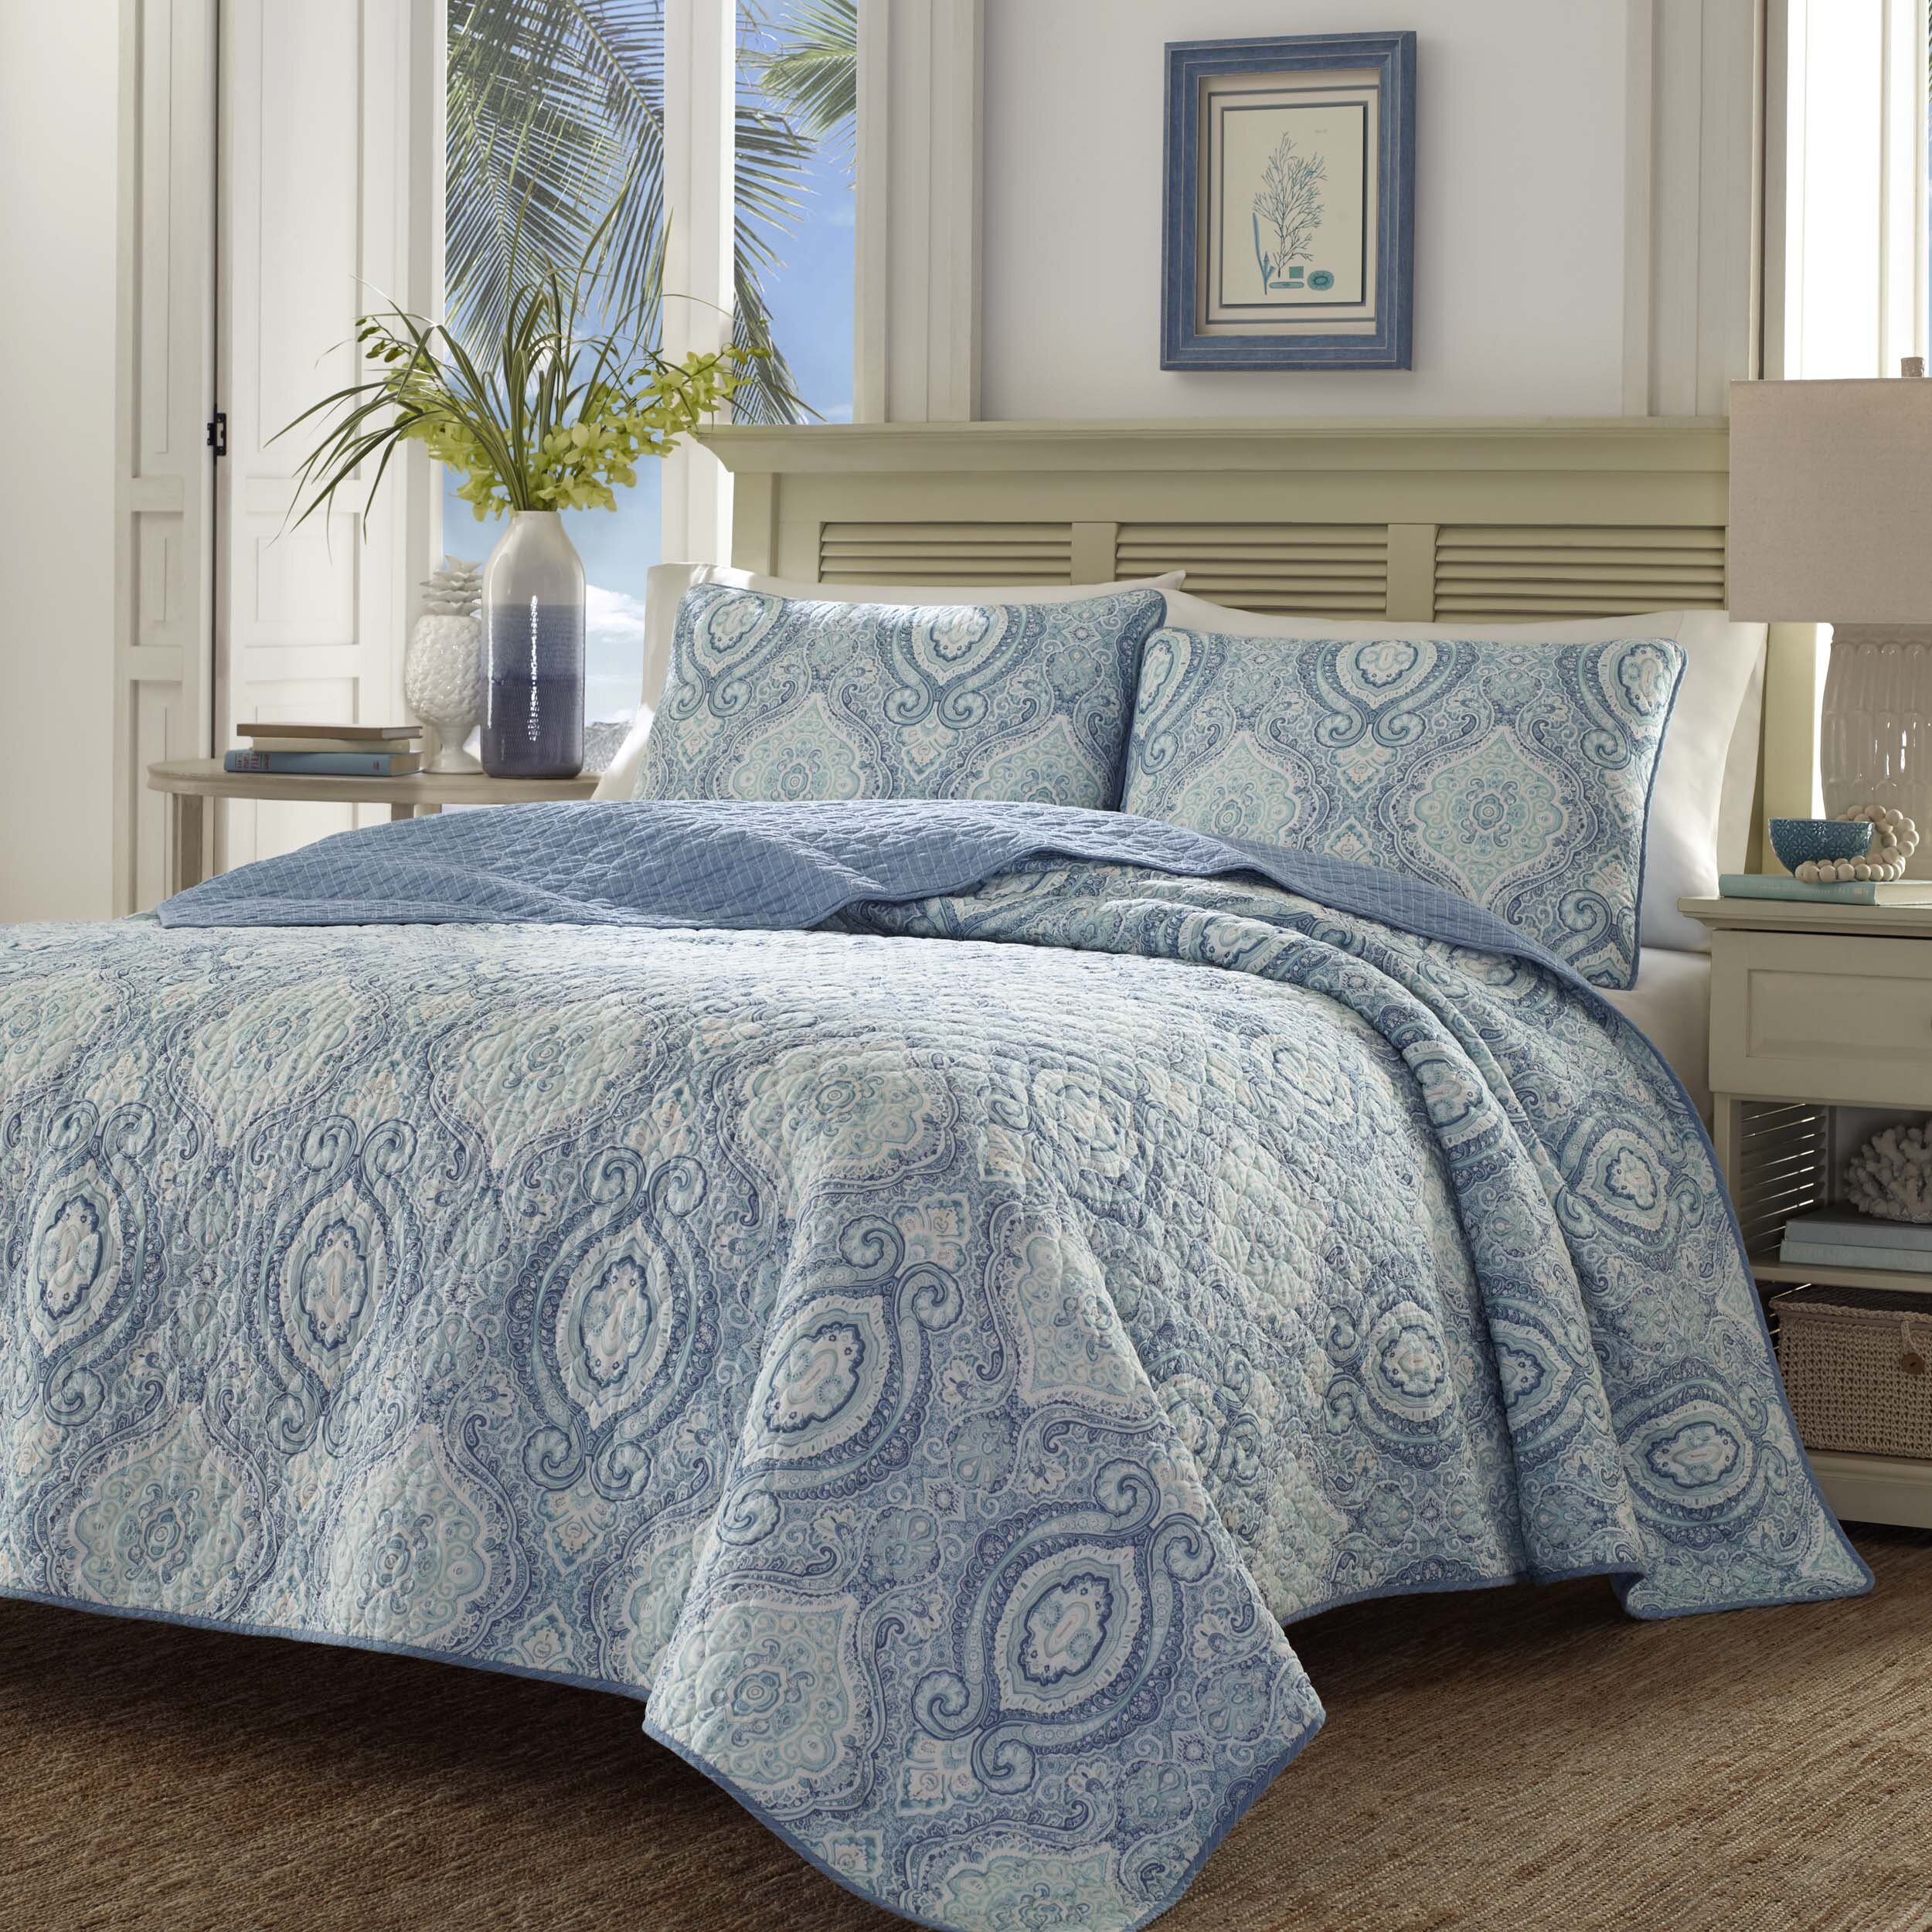 Tommy bahama bedding turtle cove quilt set tommy bahama for Bahama towel chaise cover